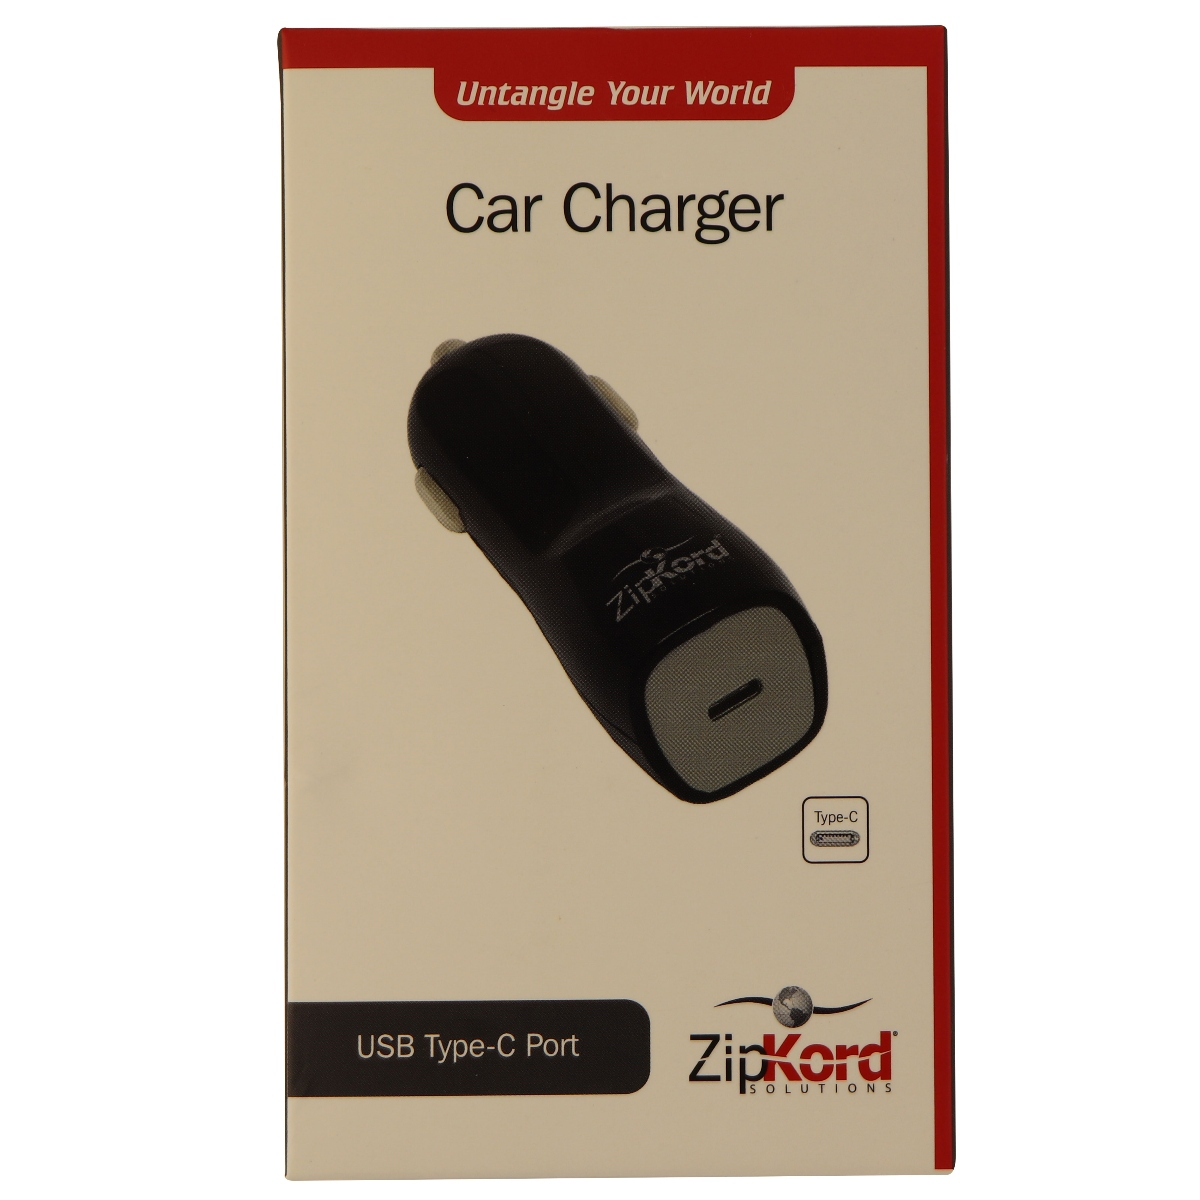 ZipKord 5V 3-Amp Vehicle Car Charger with USB-C (Type C) Port - Black/Gray